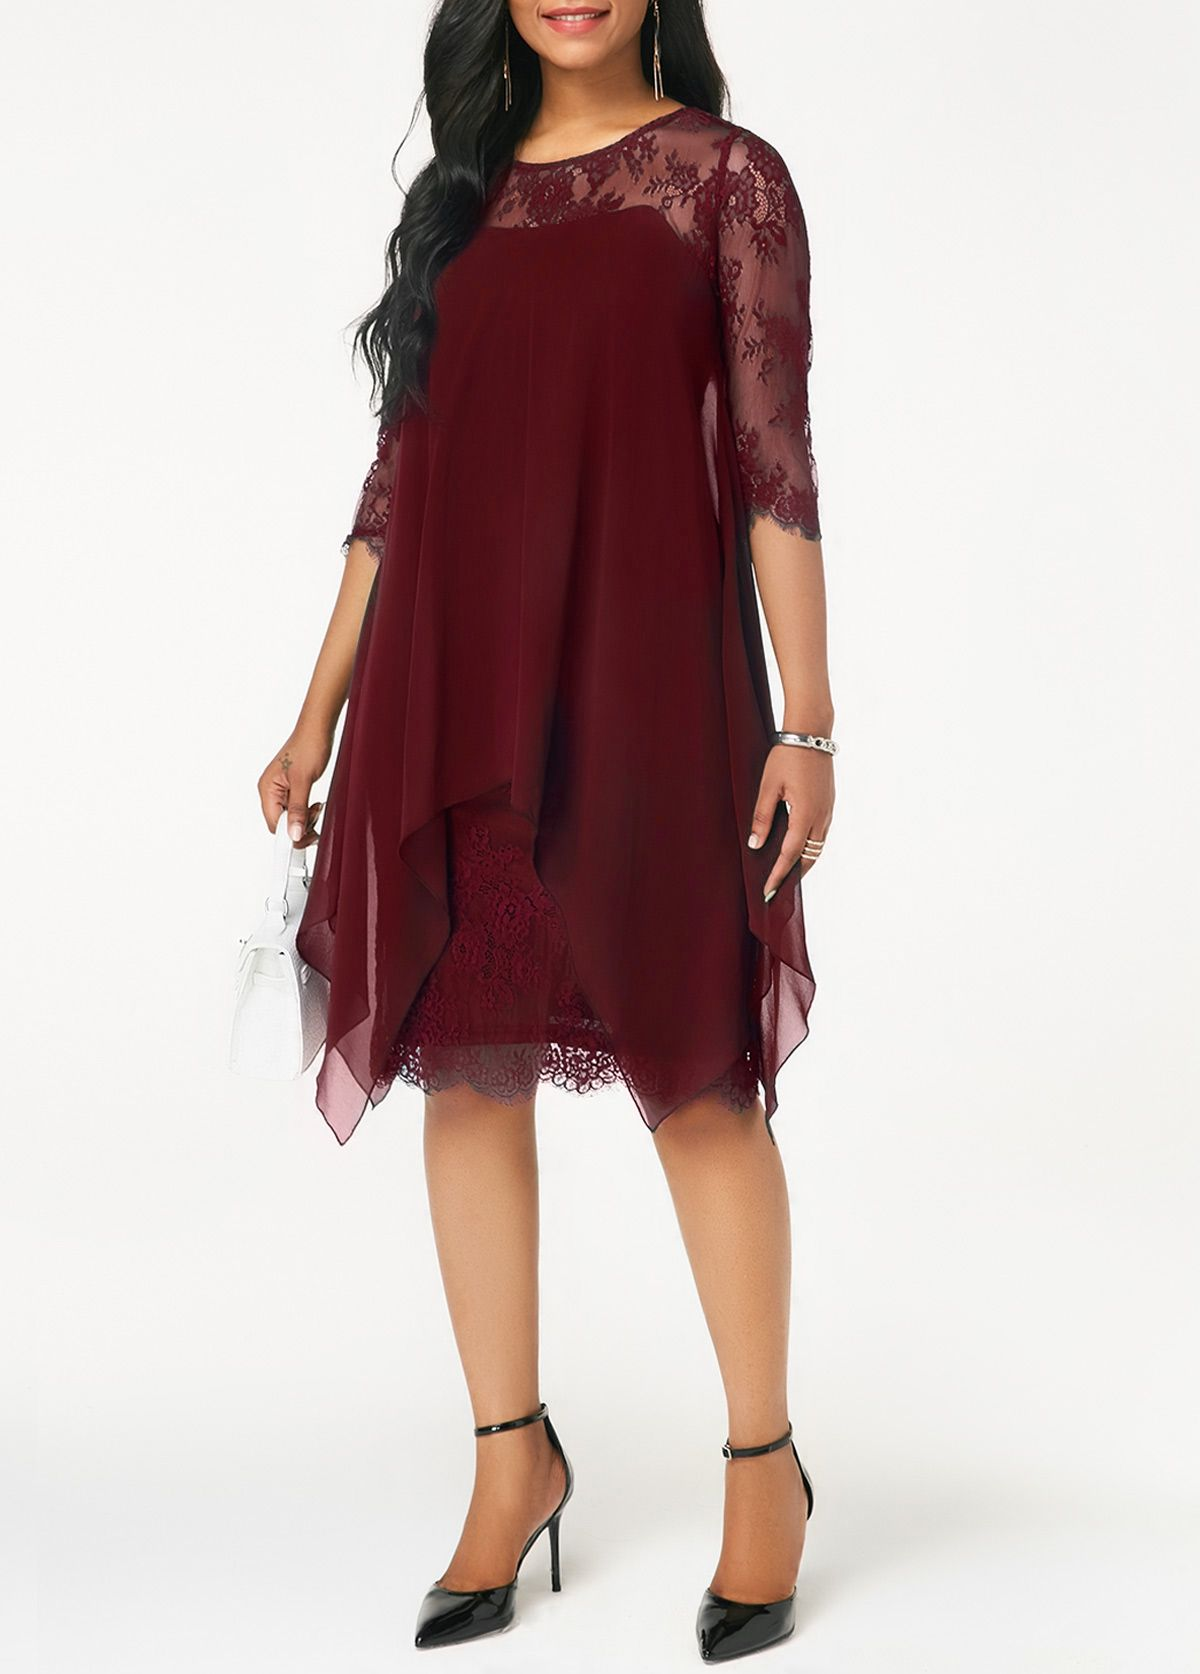 Wine red chiffon overlay lace dress in baby shower